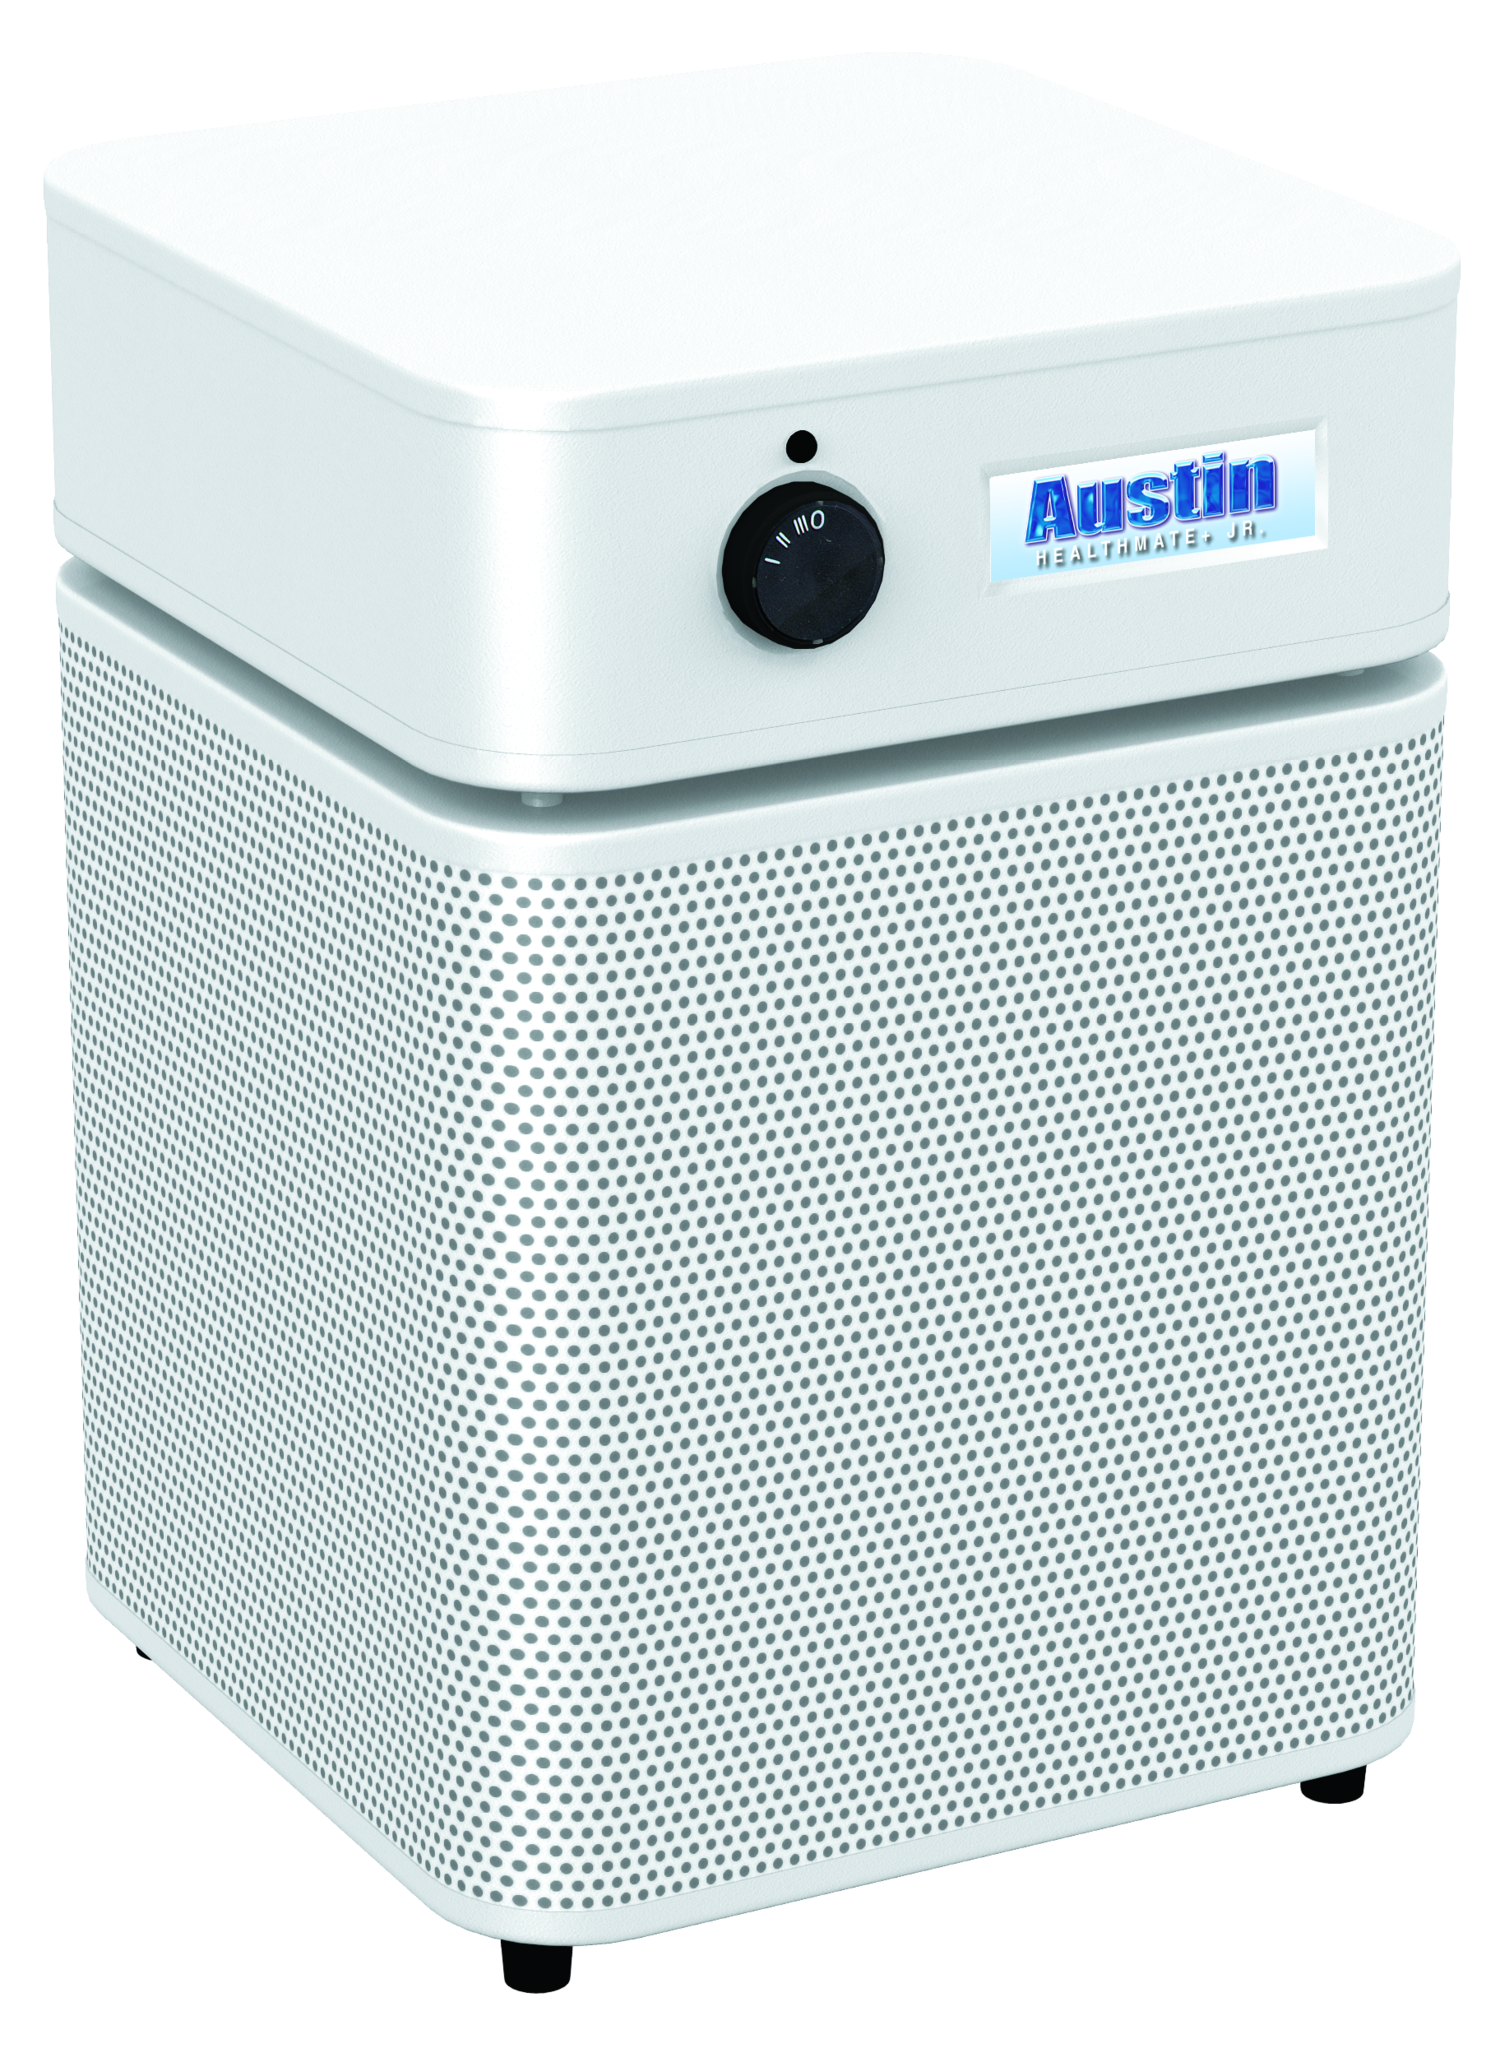 Austin Air Healthmate Plus Junior Air Purifier Air